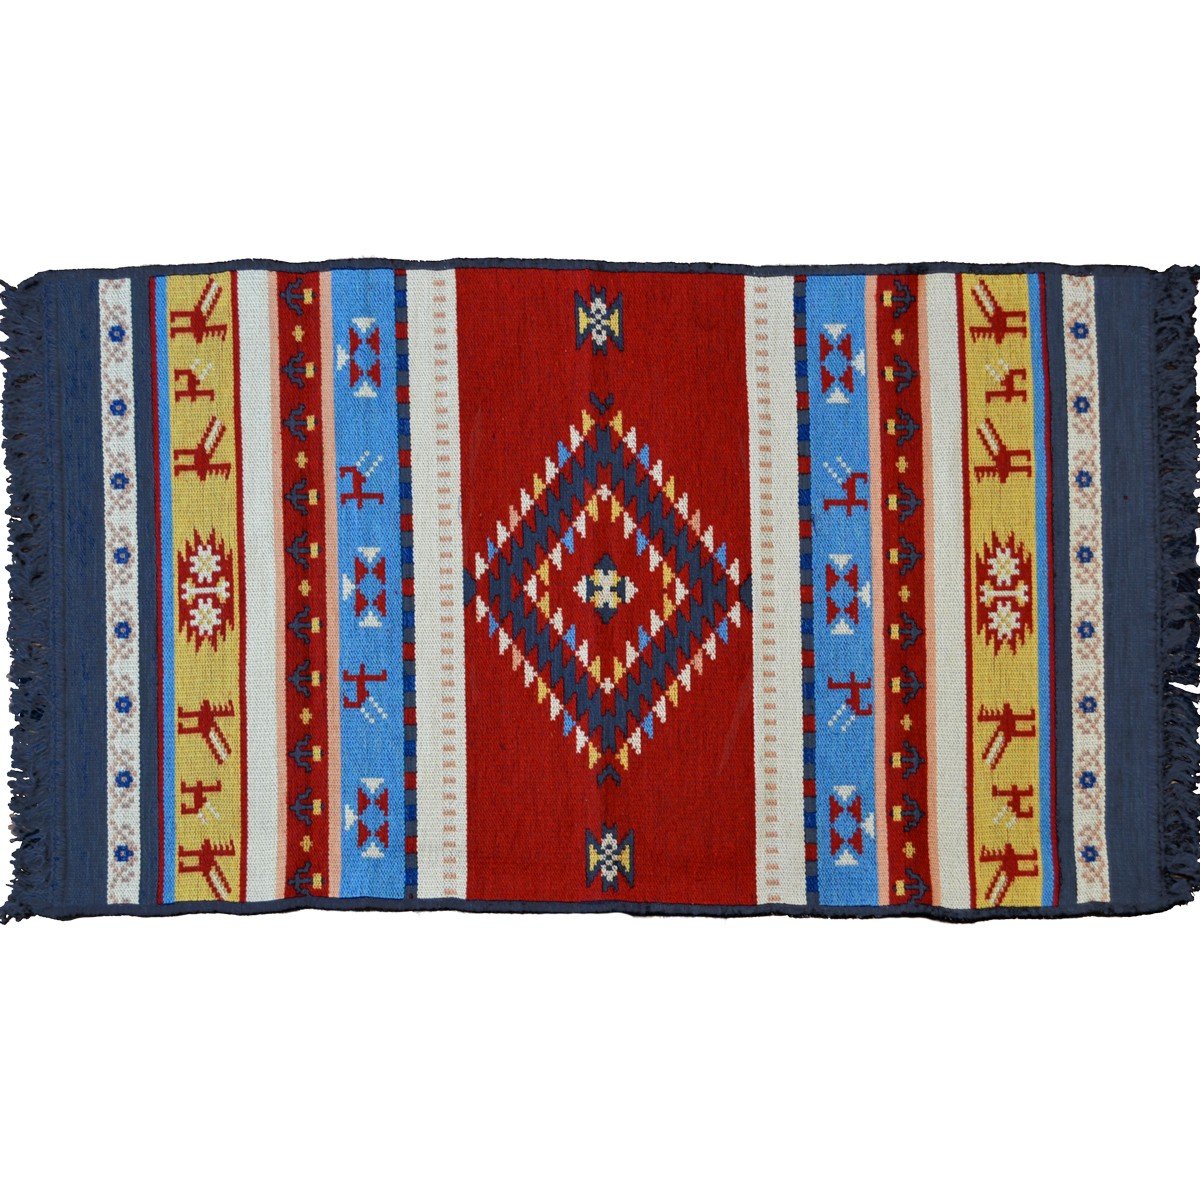 Omfalos Ethnic Carpet, Two Sided, Blue / Multi